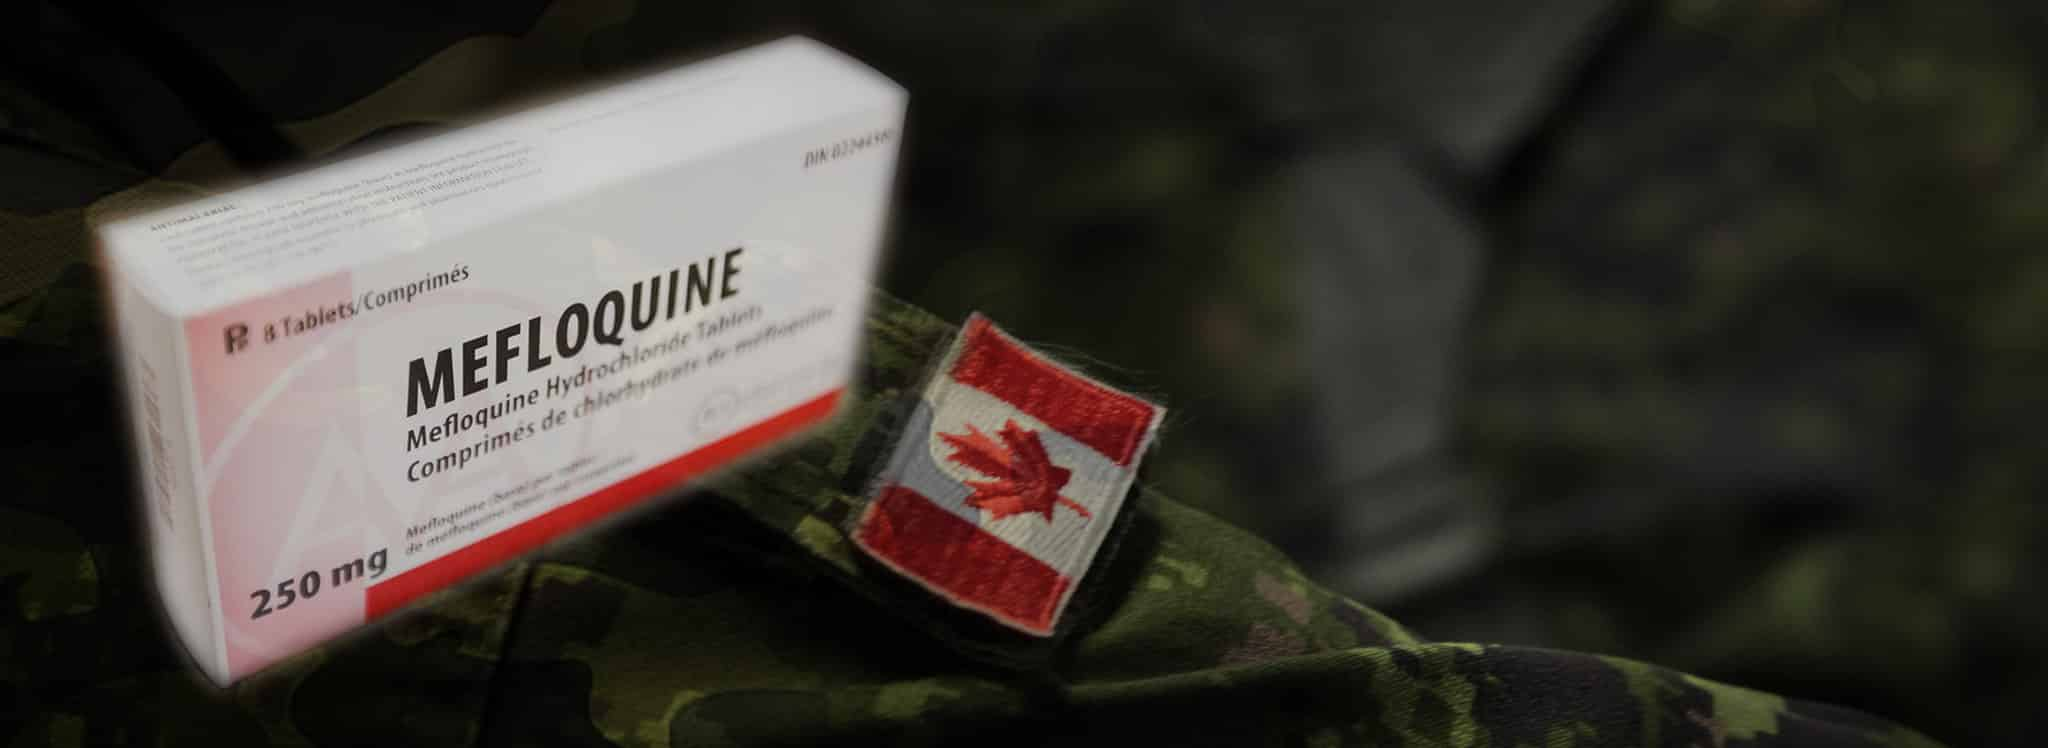 November 25, 2019 – Mefloquine Lawsuit Update